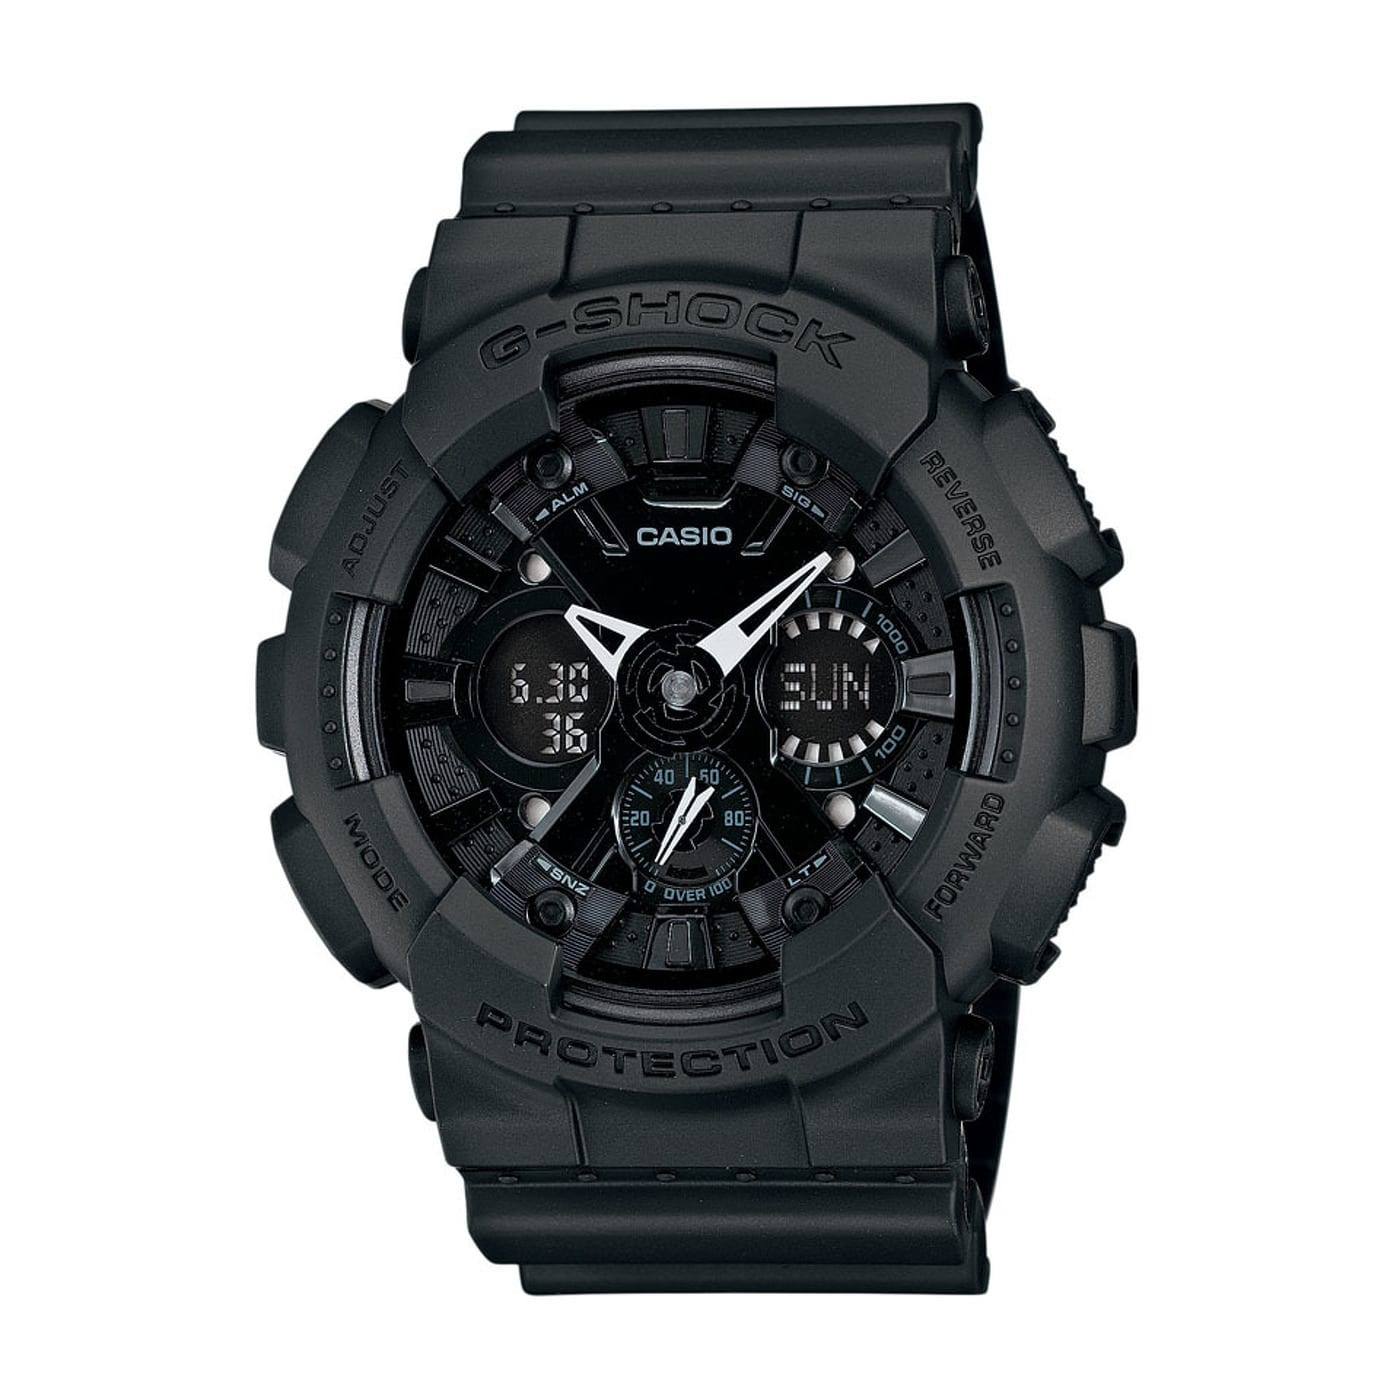 Casio G-Shock GA 120BB-1AER black